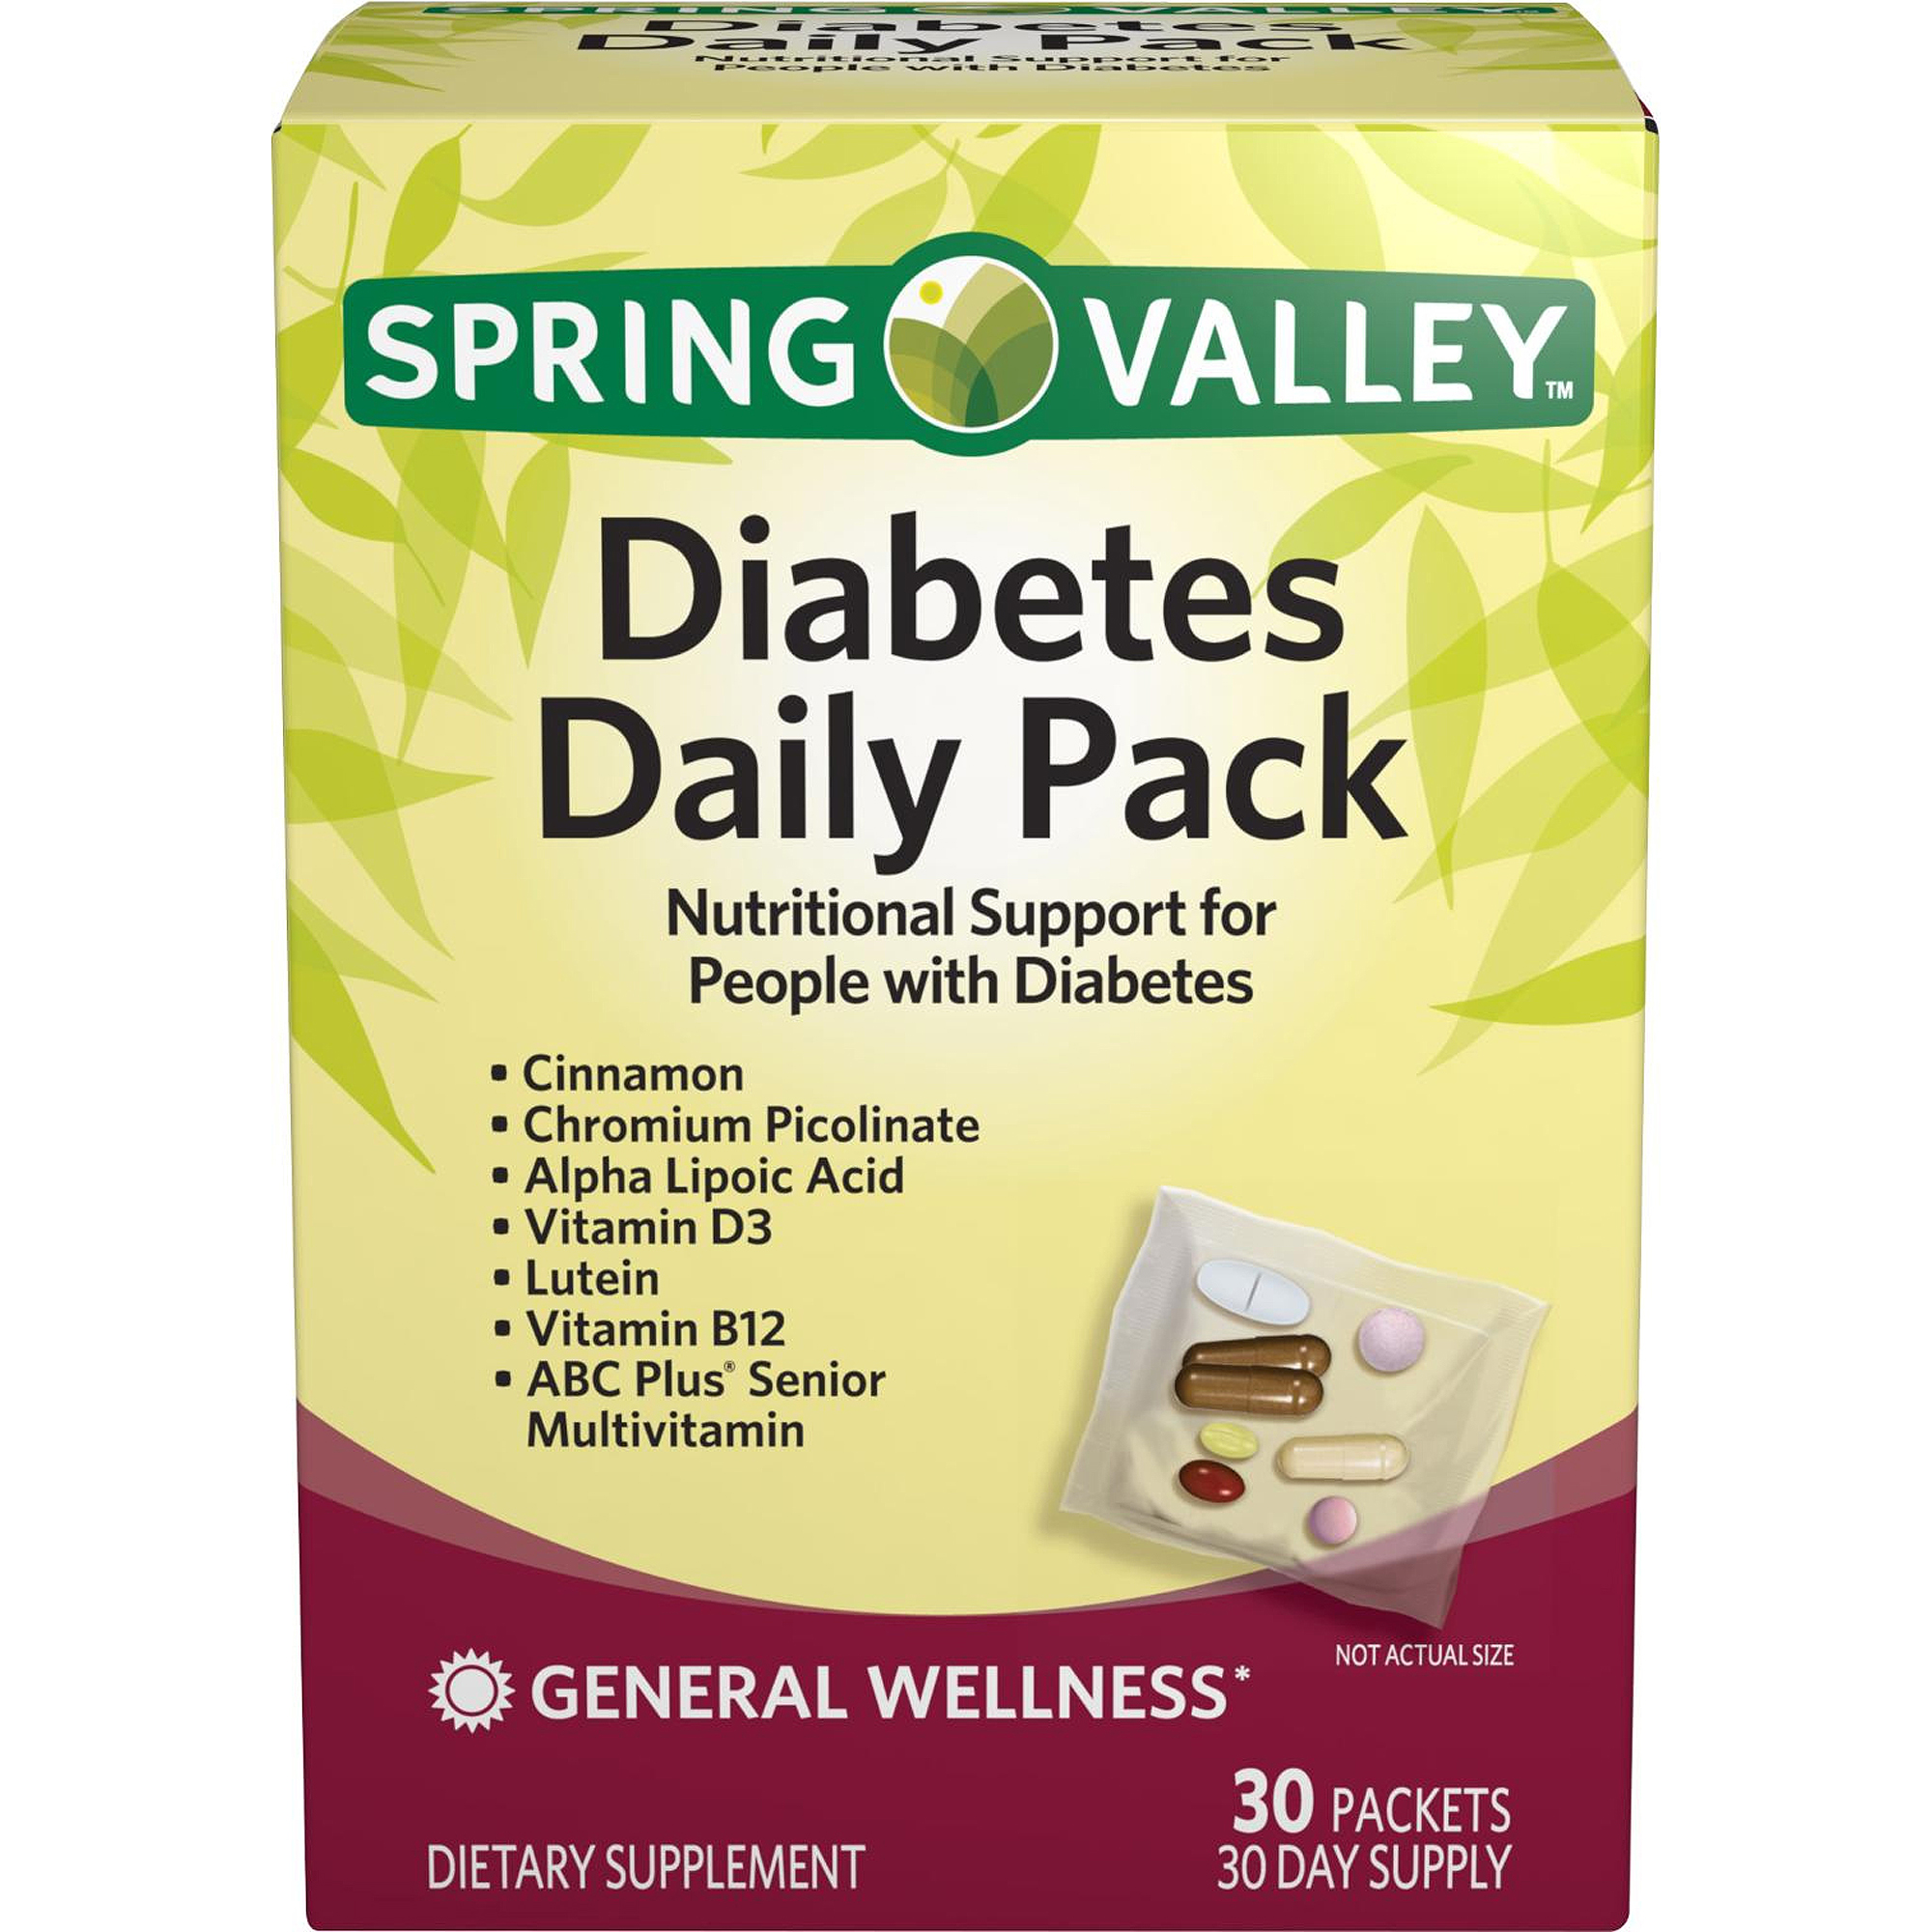 Spring Valley Diabetes Daily Pack Dietary Supplement Packets, 30 count